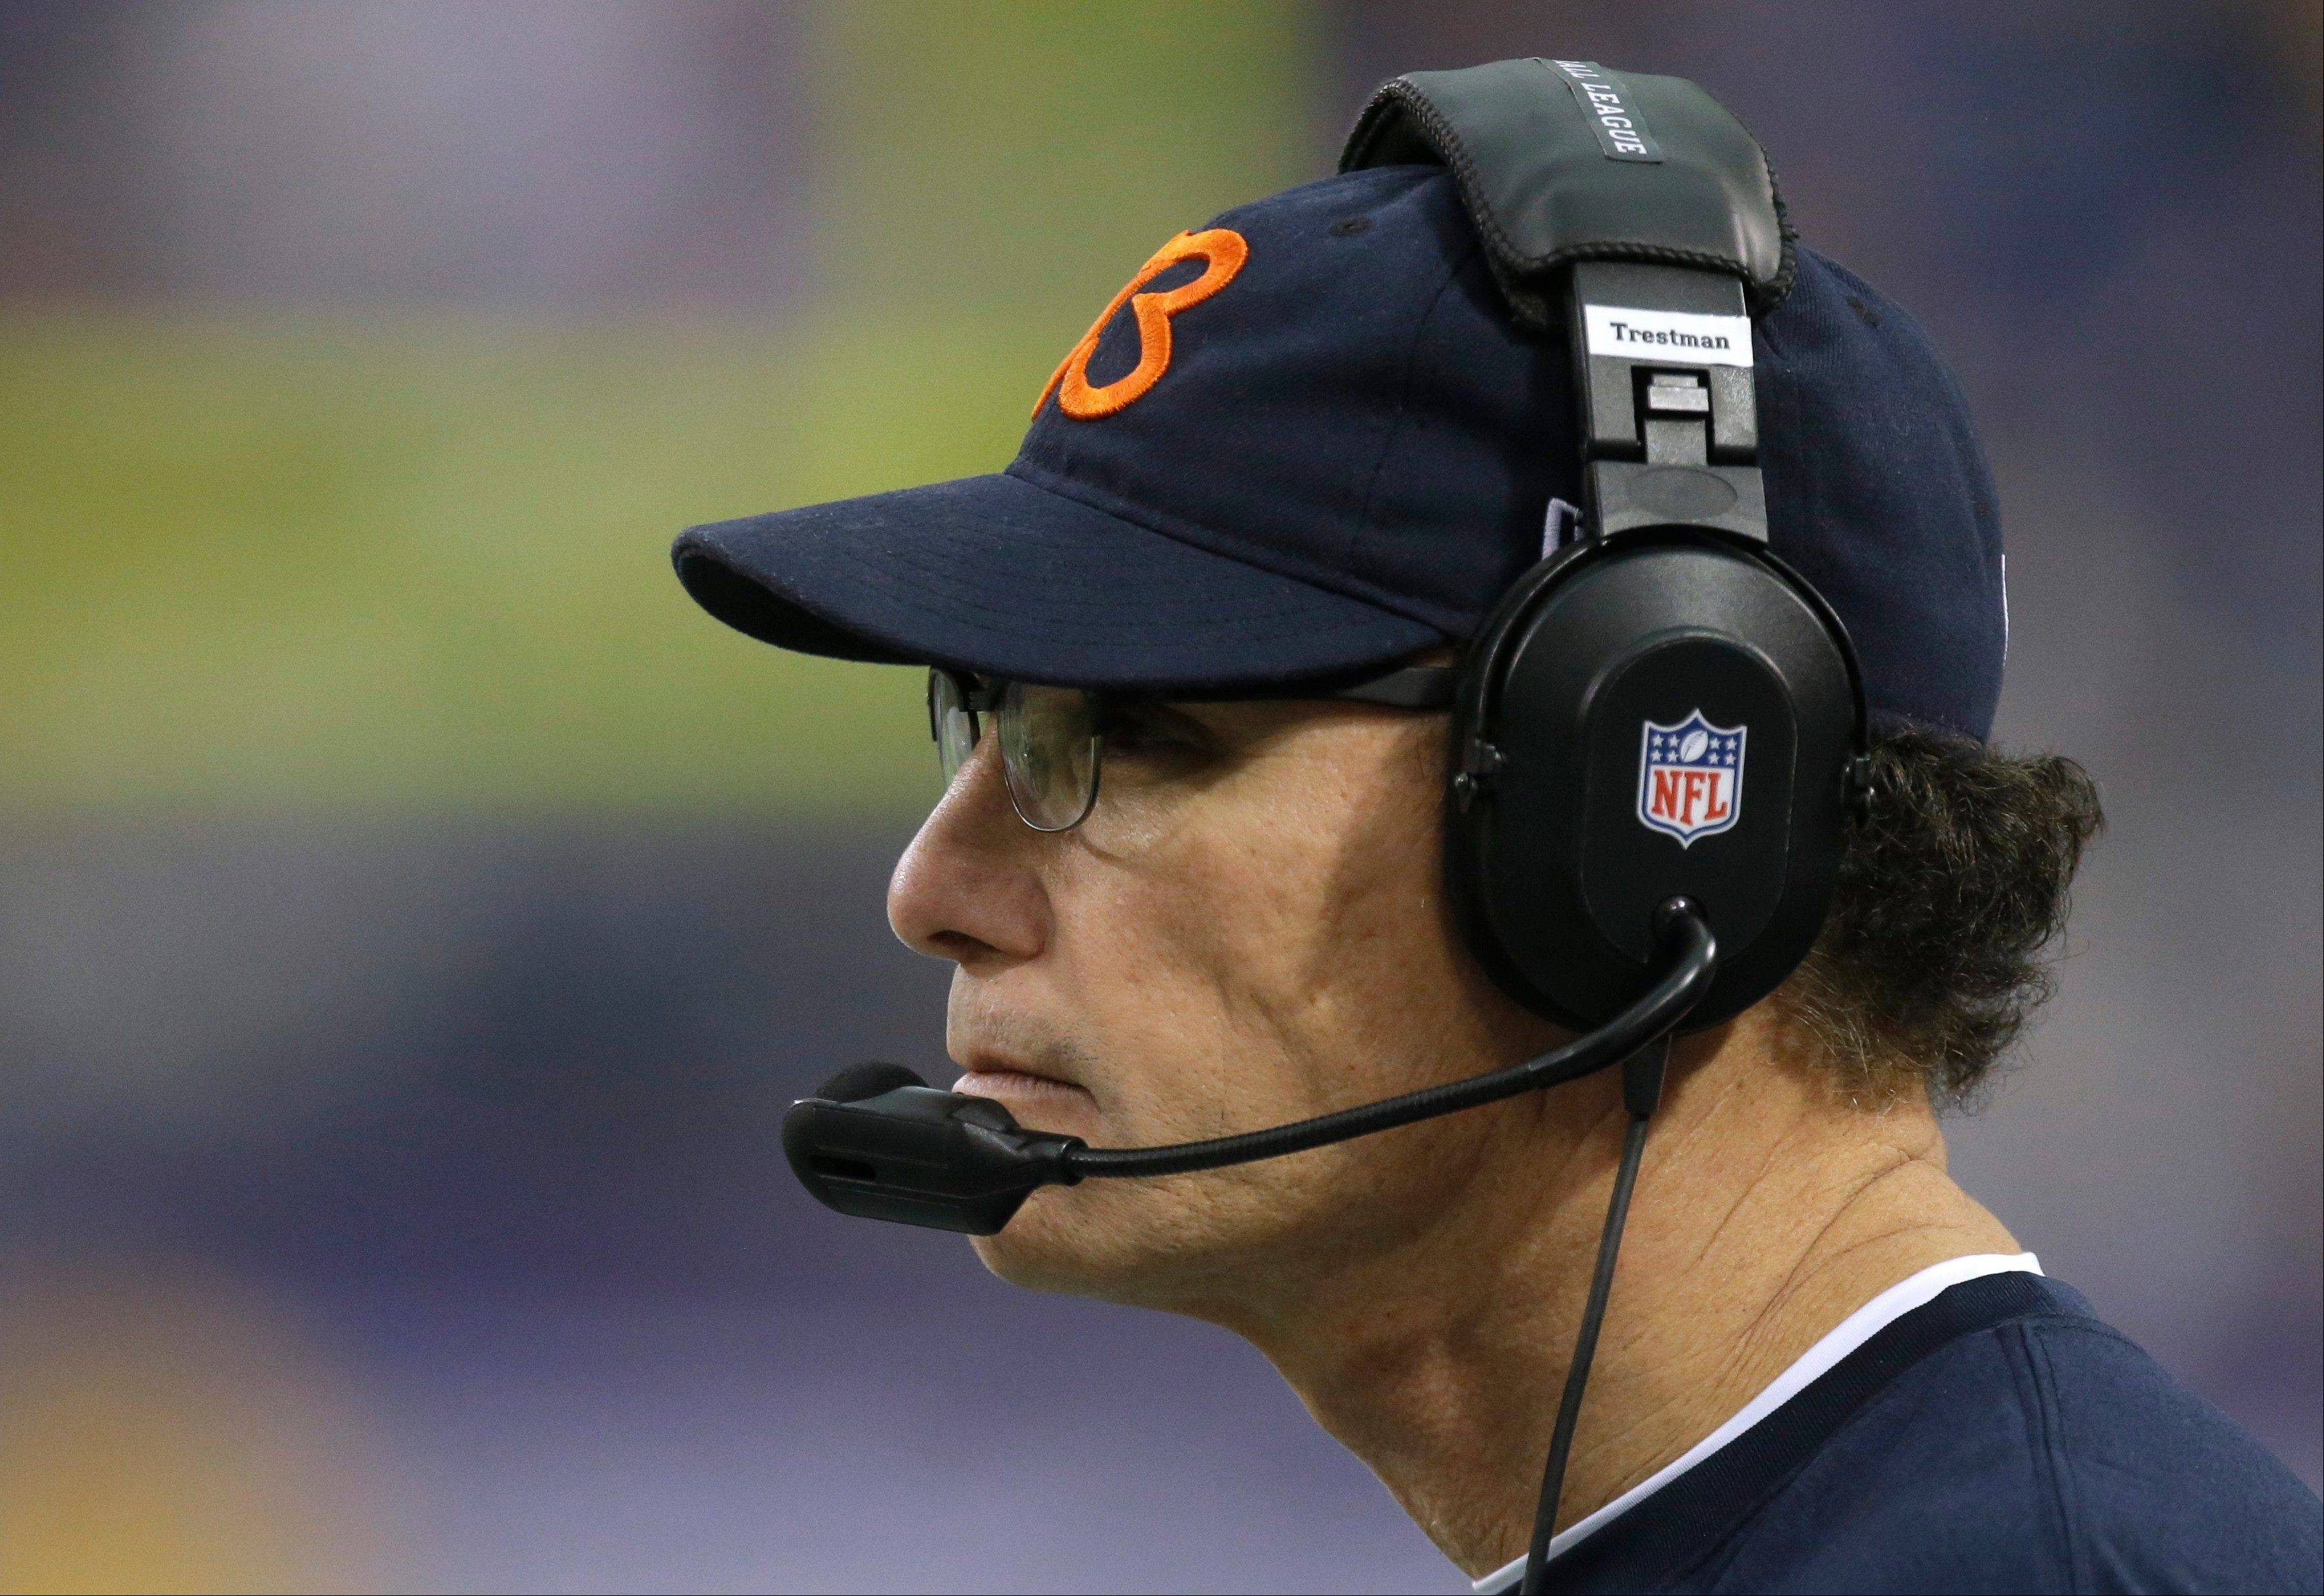 Chicago Bears head coach Marc Trestman looks on during the second half of an NFL football game against the Minnesota Vikings, Sunday, Dec. 1, 2013, in Minneapolis. (AP Photo/Jim Mone)